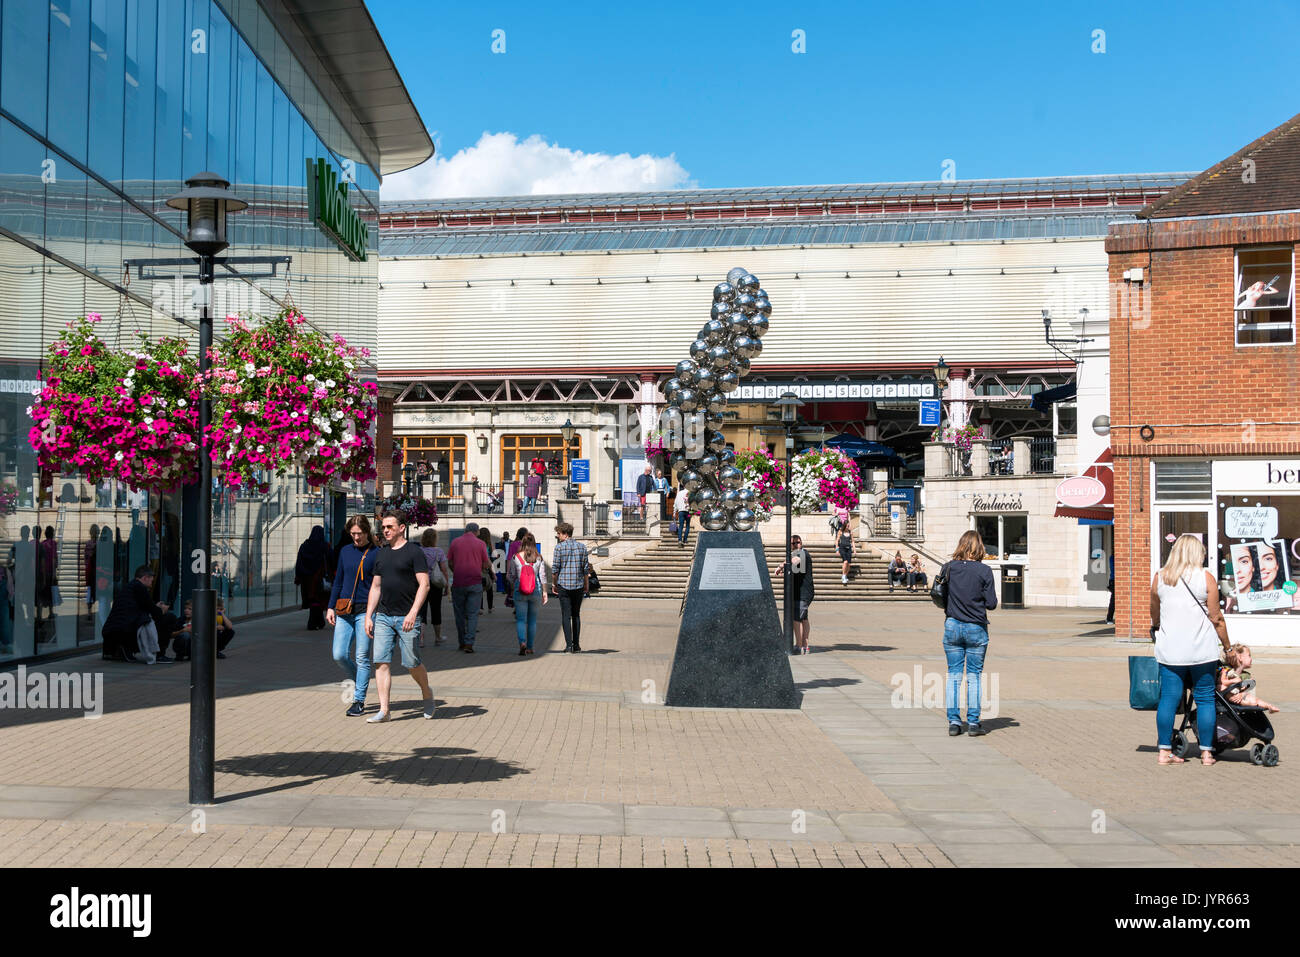 Windsor Royal Shopping Arcade from Bridgewater Way, Windsor, Berkshire, England, United Kingdom - Stock Image